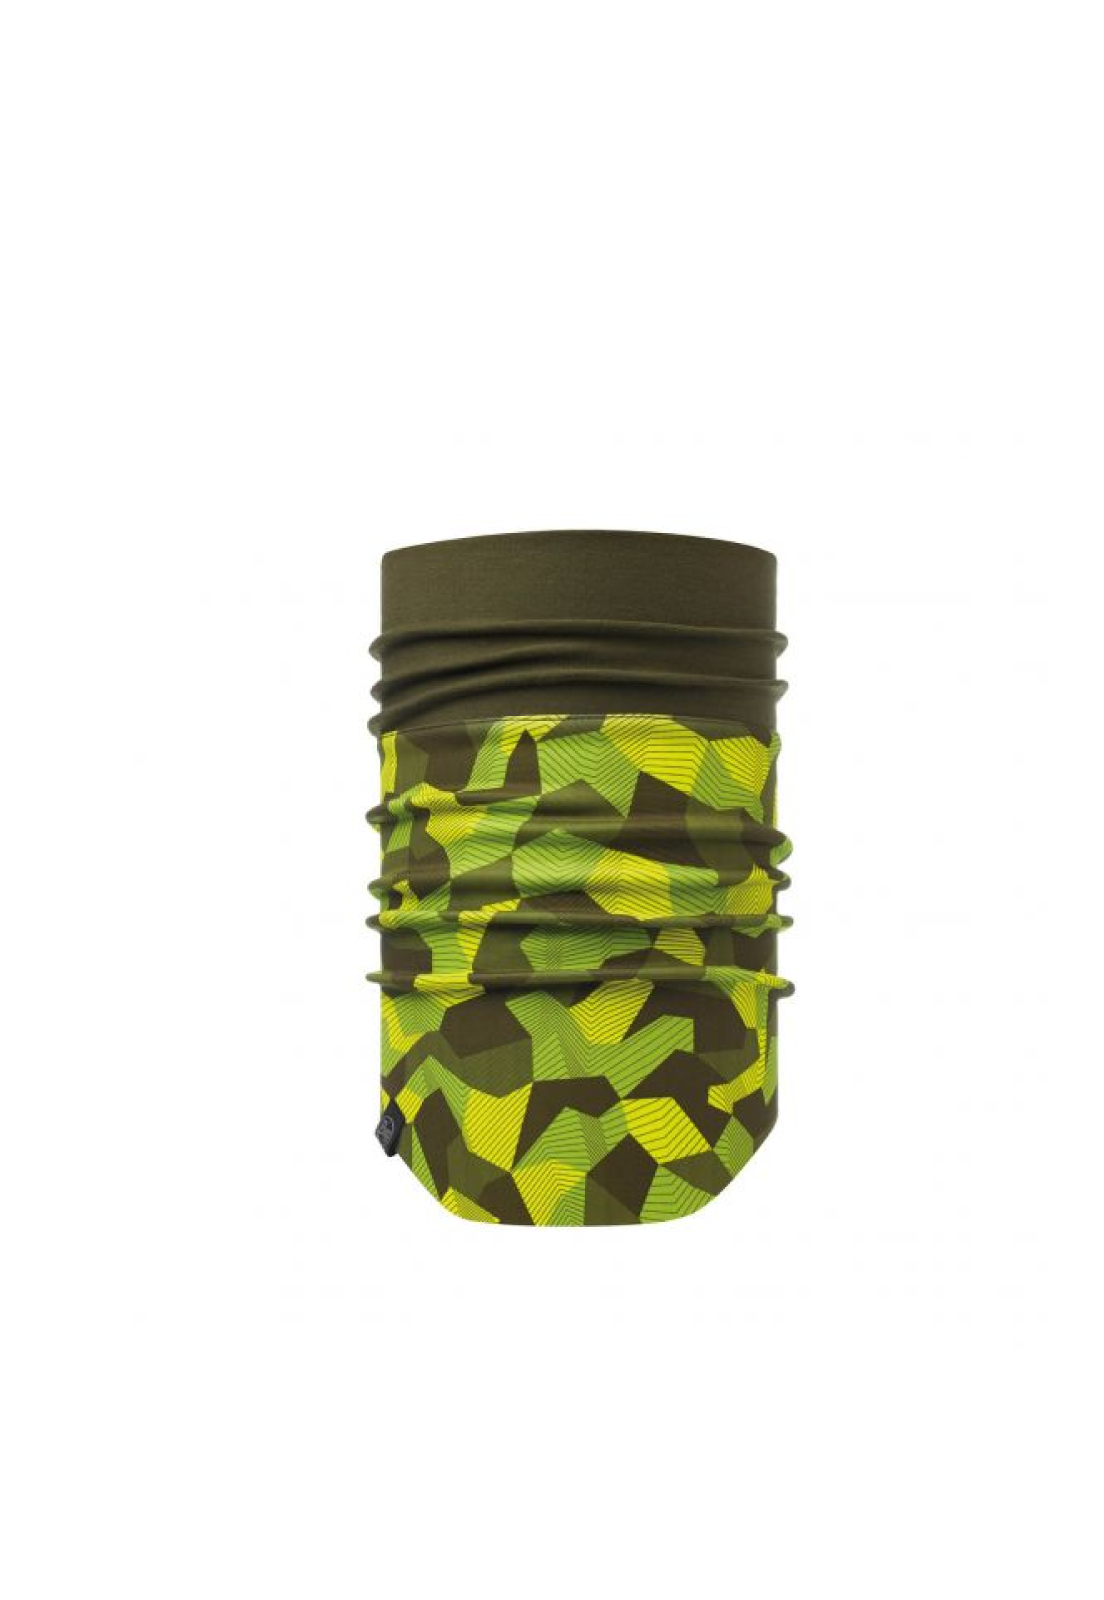 Windproof Neckwarmer Block Camo Green